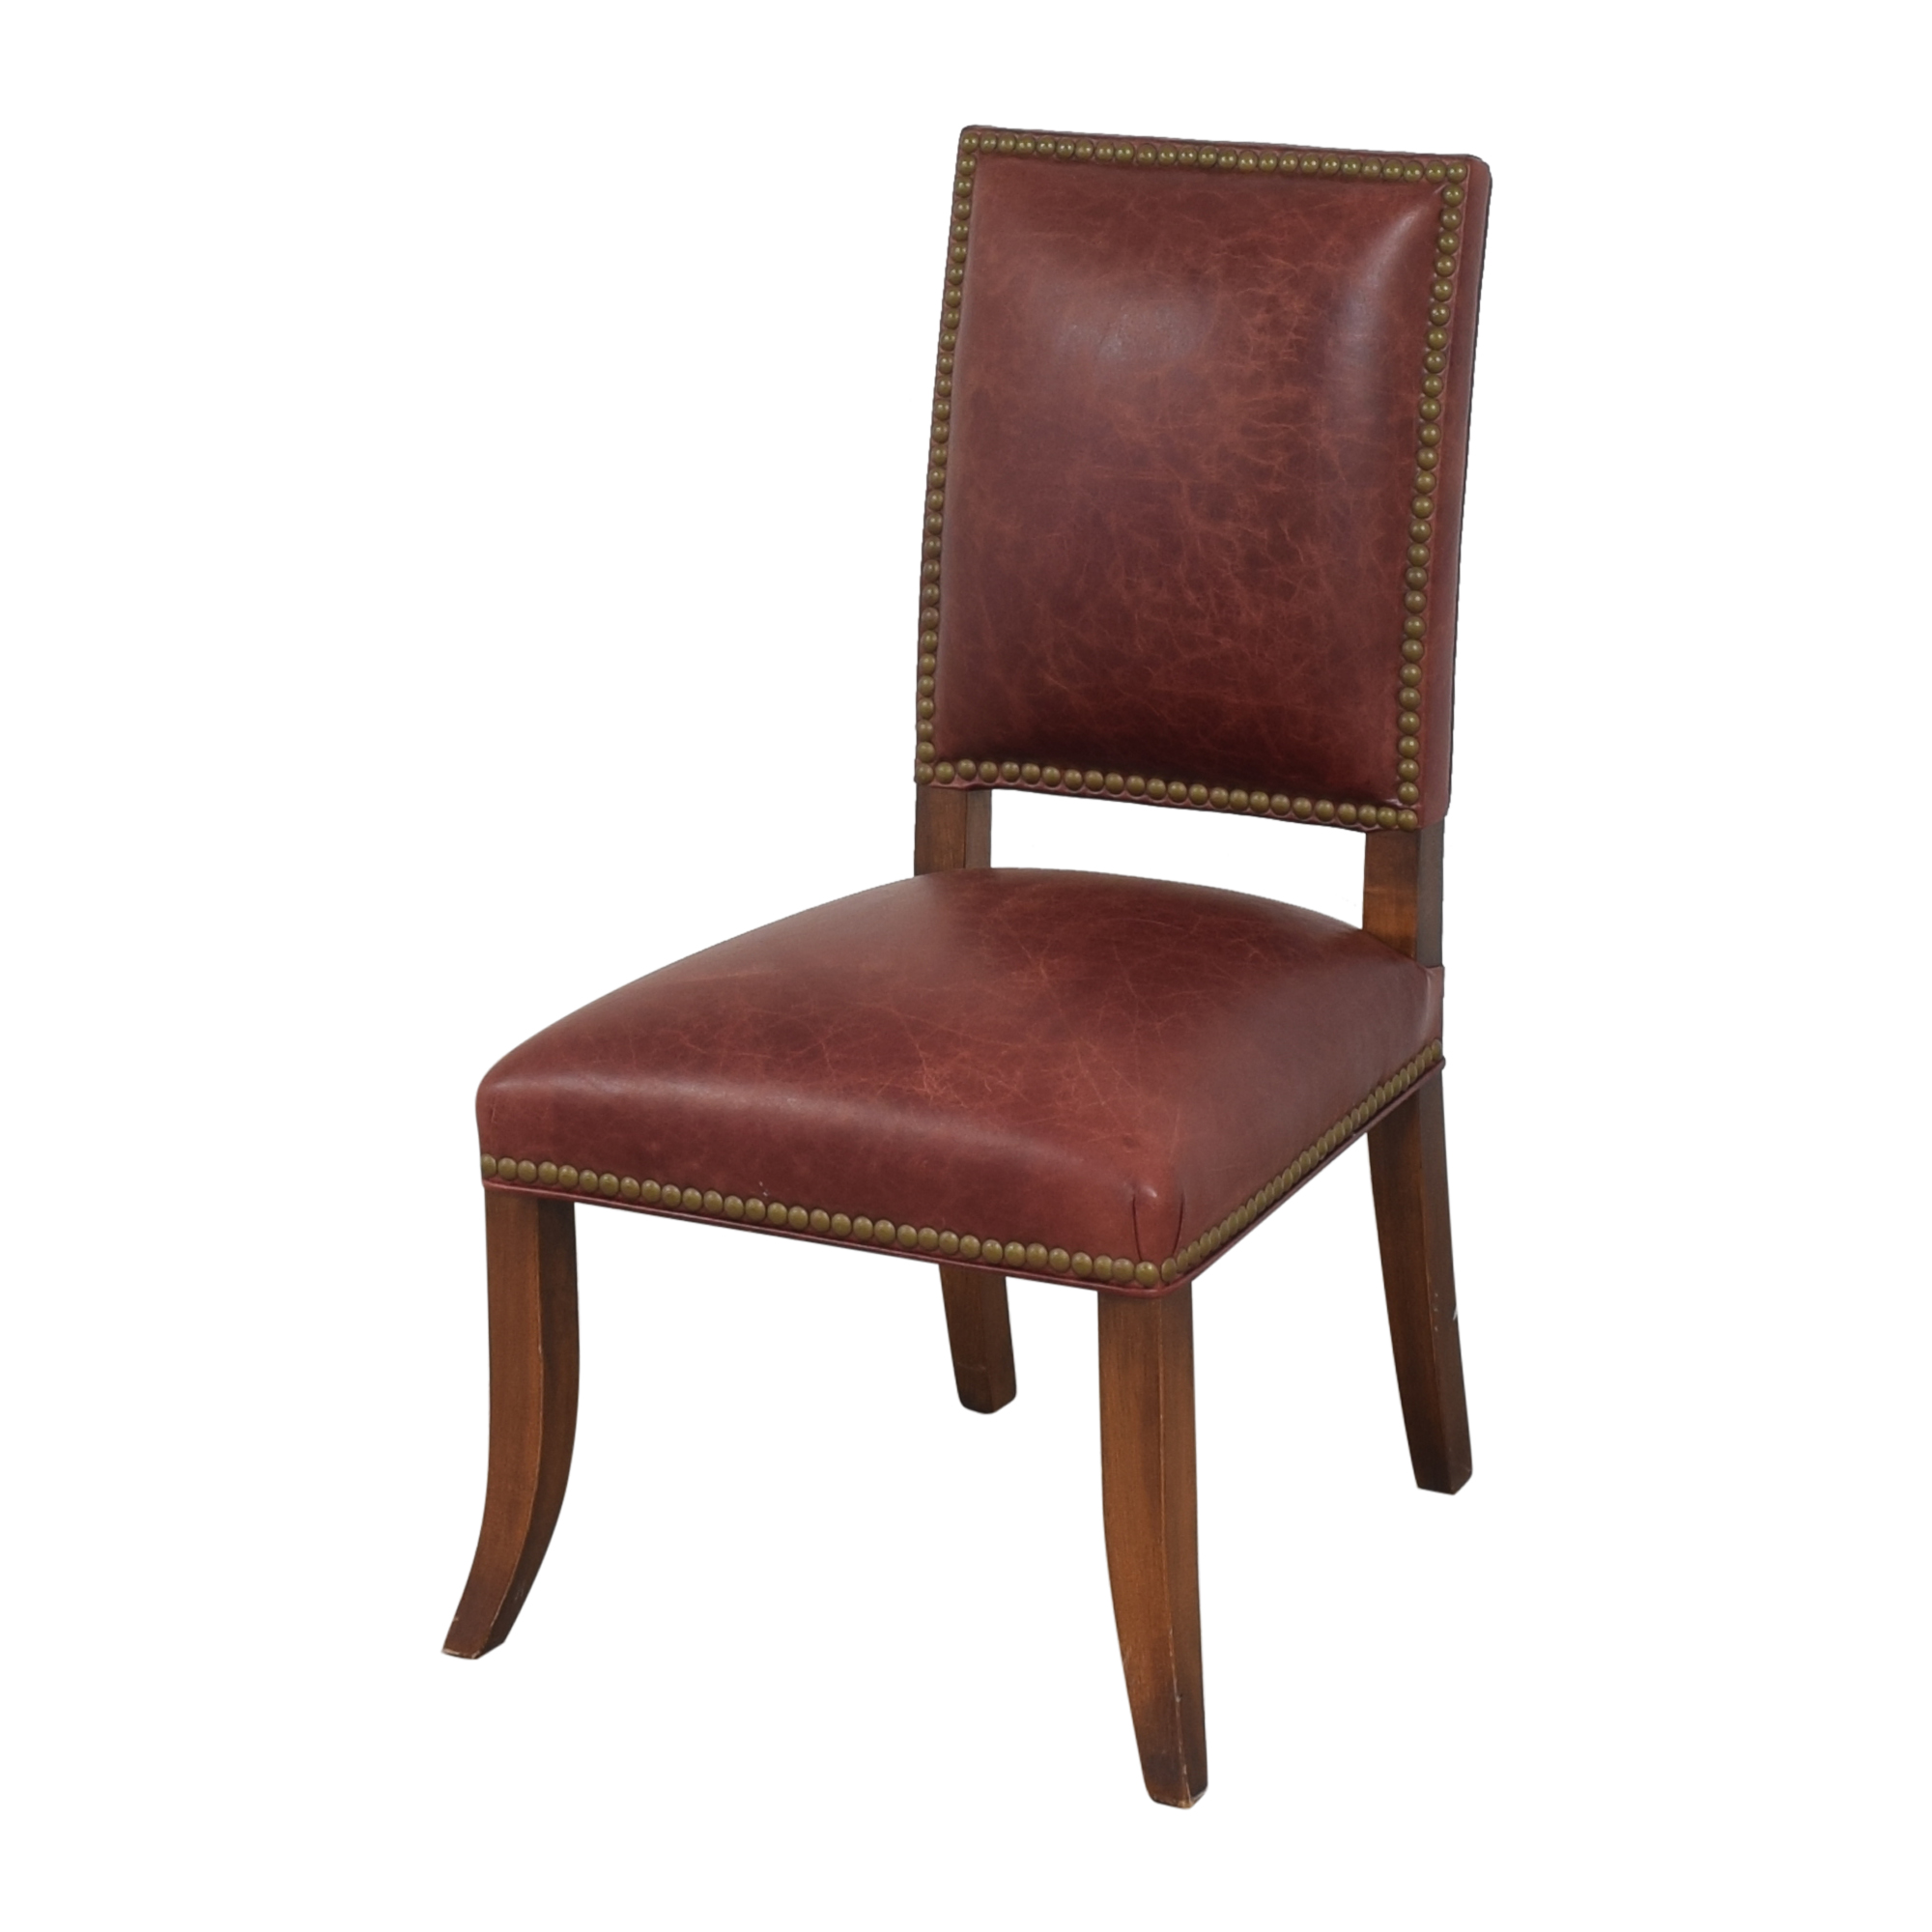 Ethan Allen Nailhead Dining Side Chairs / Chairs